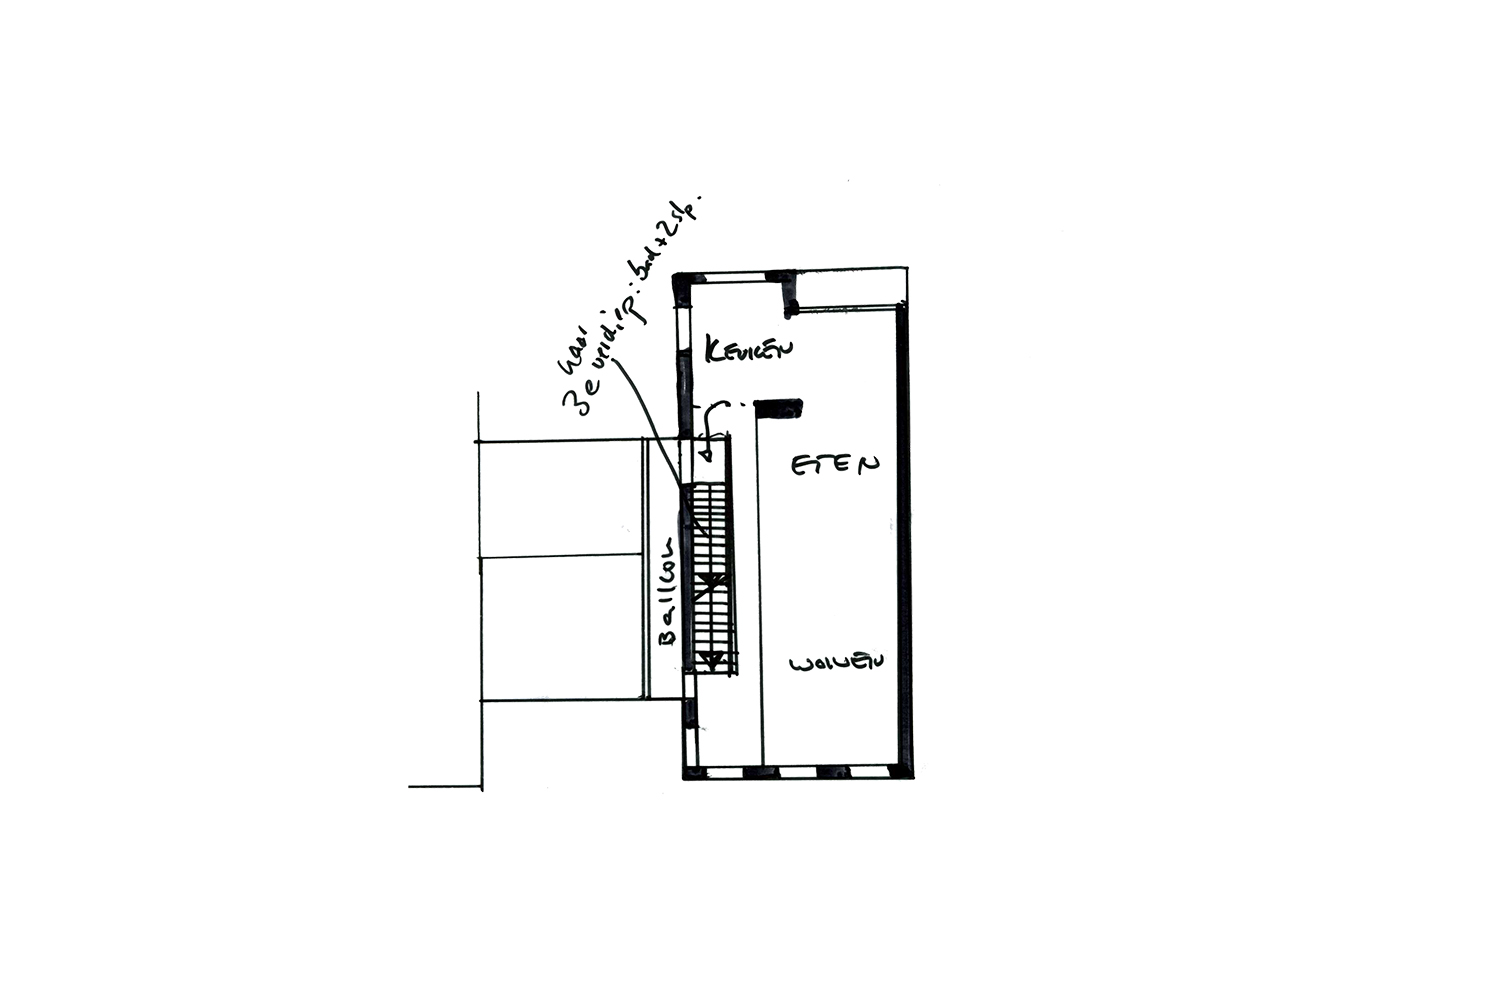 06_floor plans sketches2.jpg